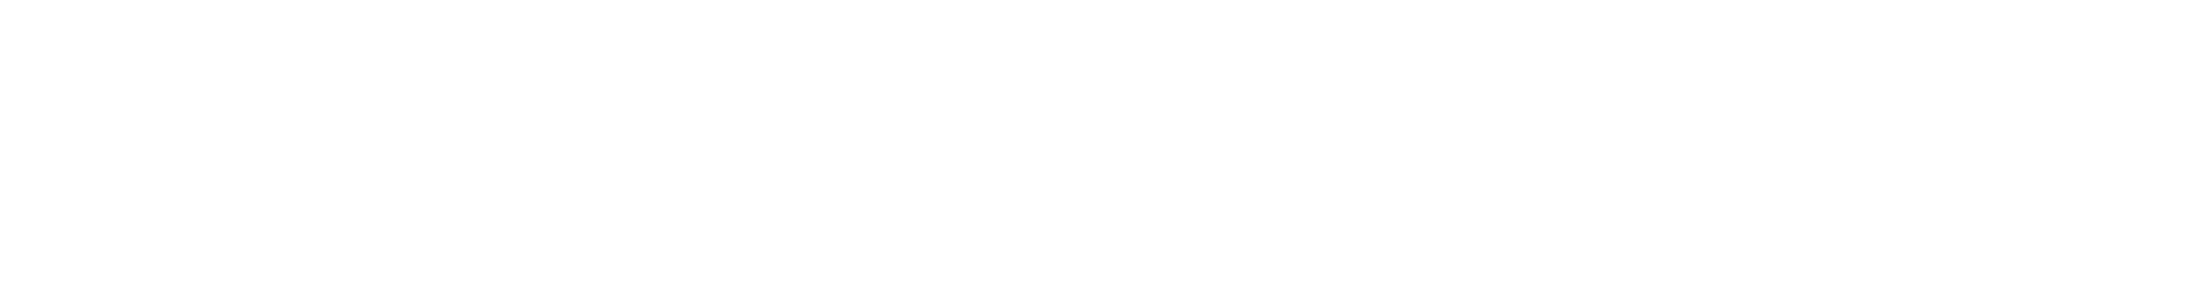 To The Point Records